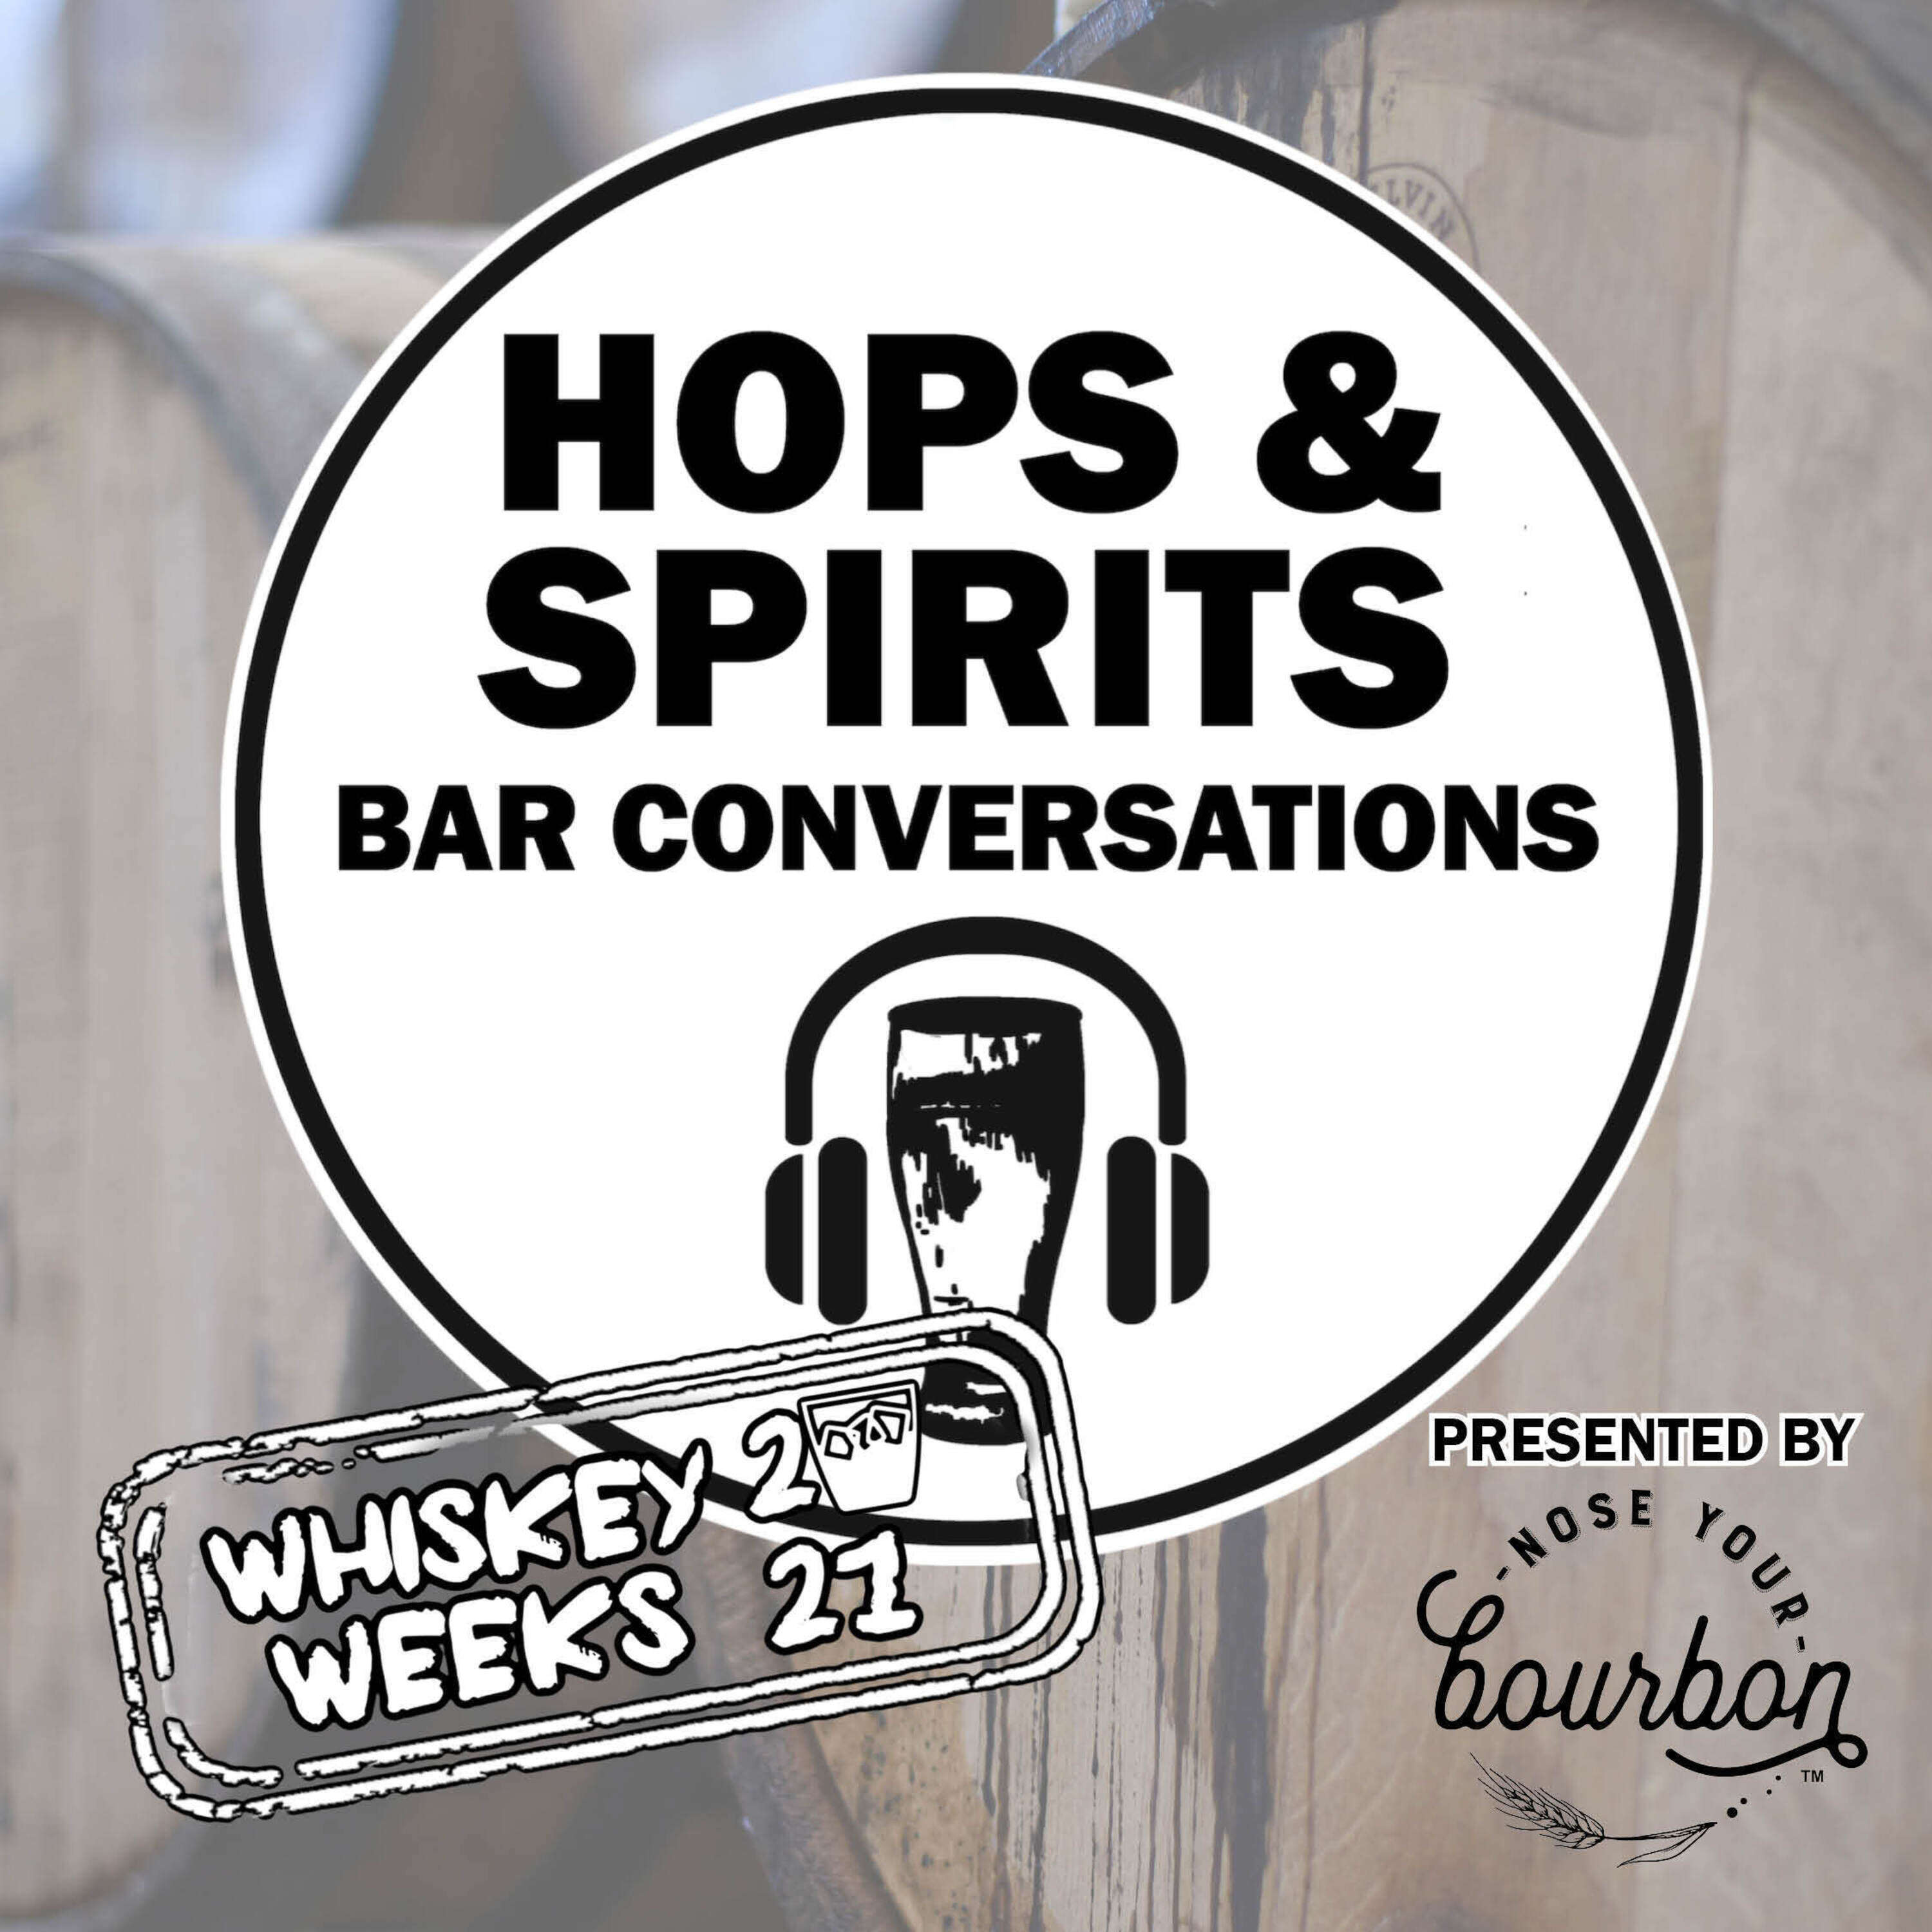 Episode 67: Bourbon, sustainability and sourcing locally with Great Lakes' Guy Rehorst